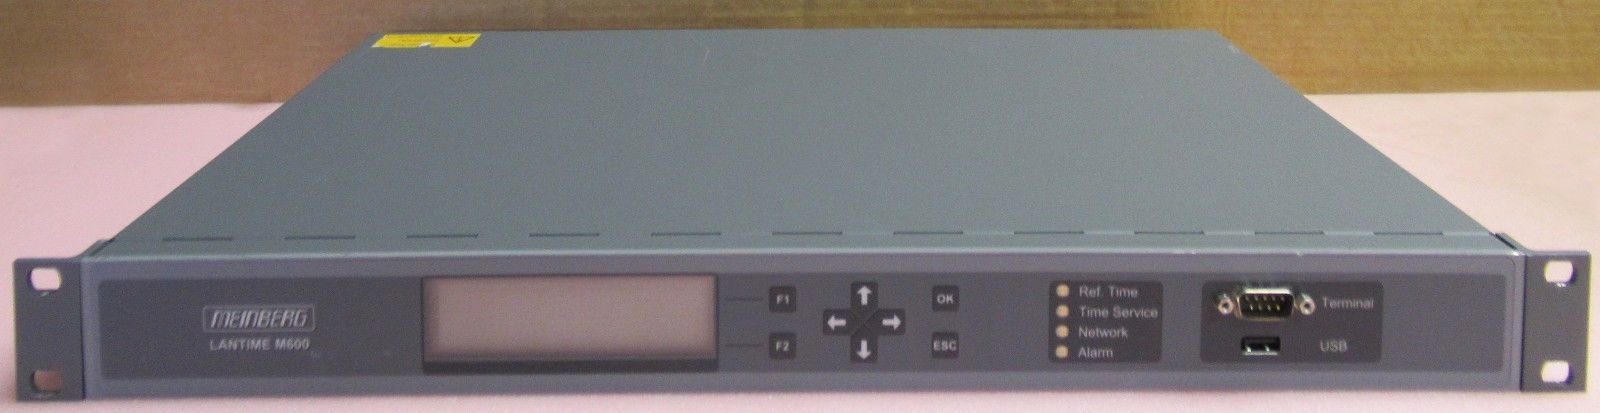 Meinberg LANTIME M600 High End NTP Time Server With